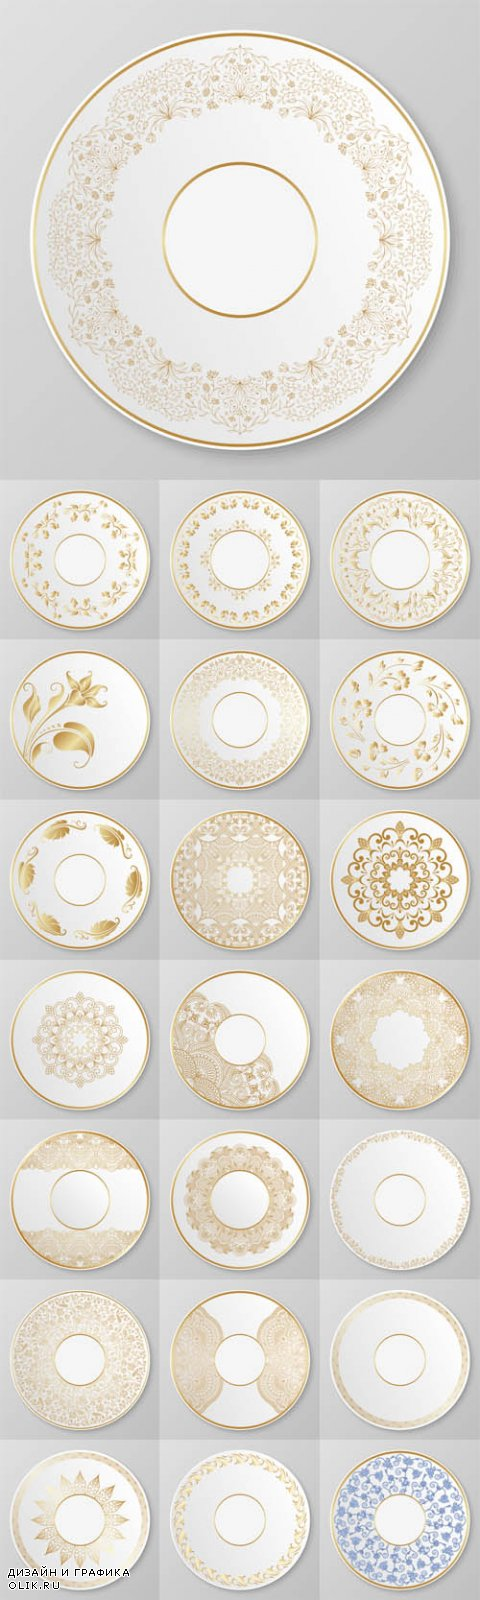 Vector Gold Decorative Plates